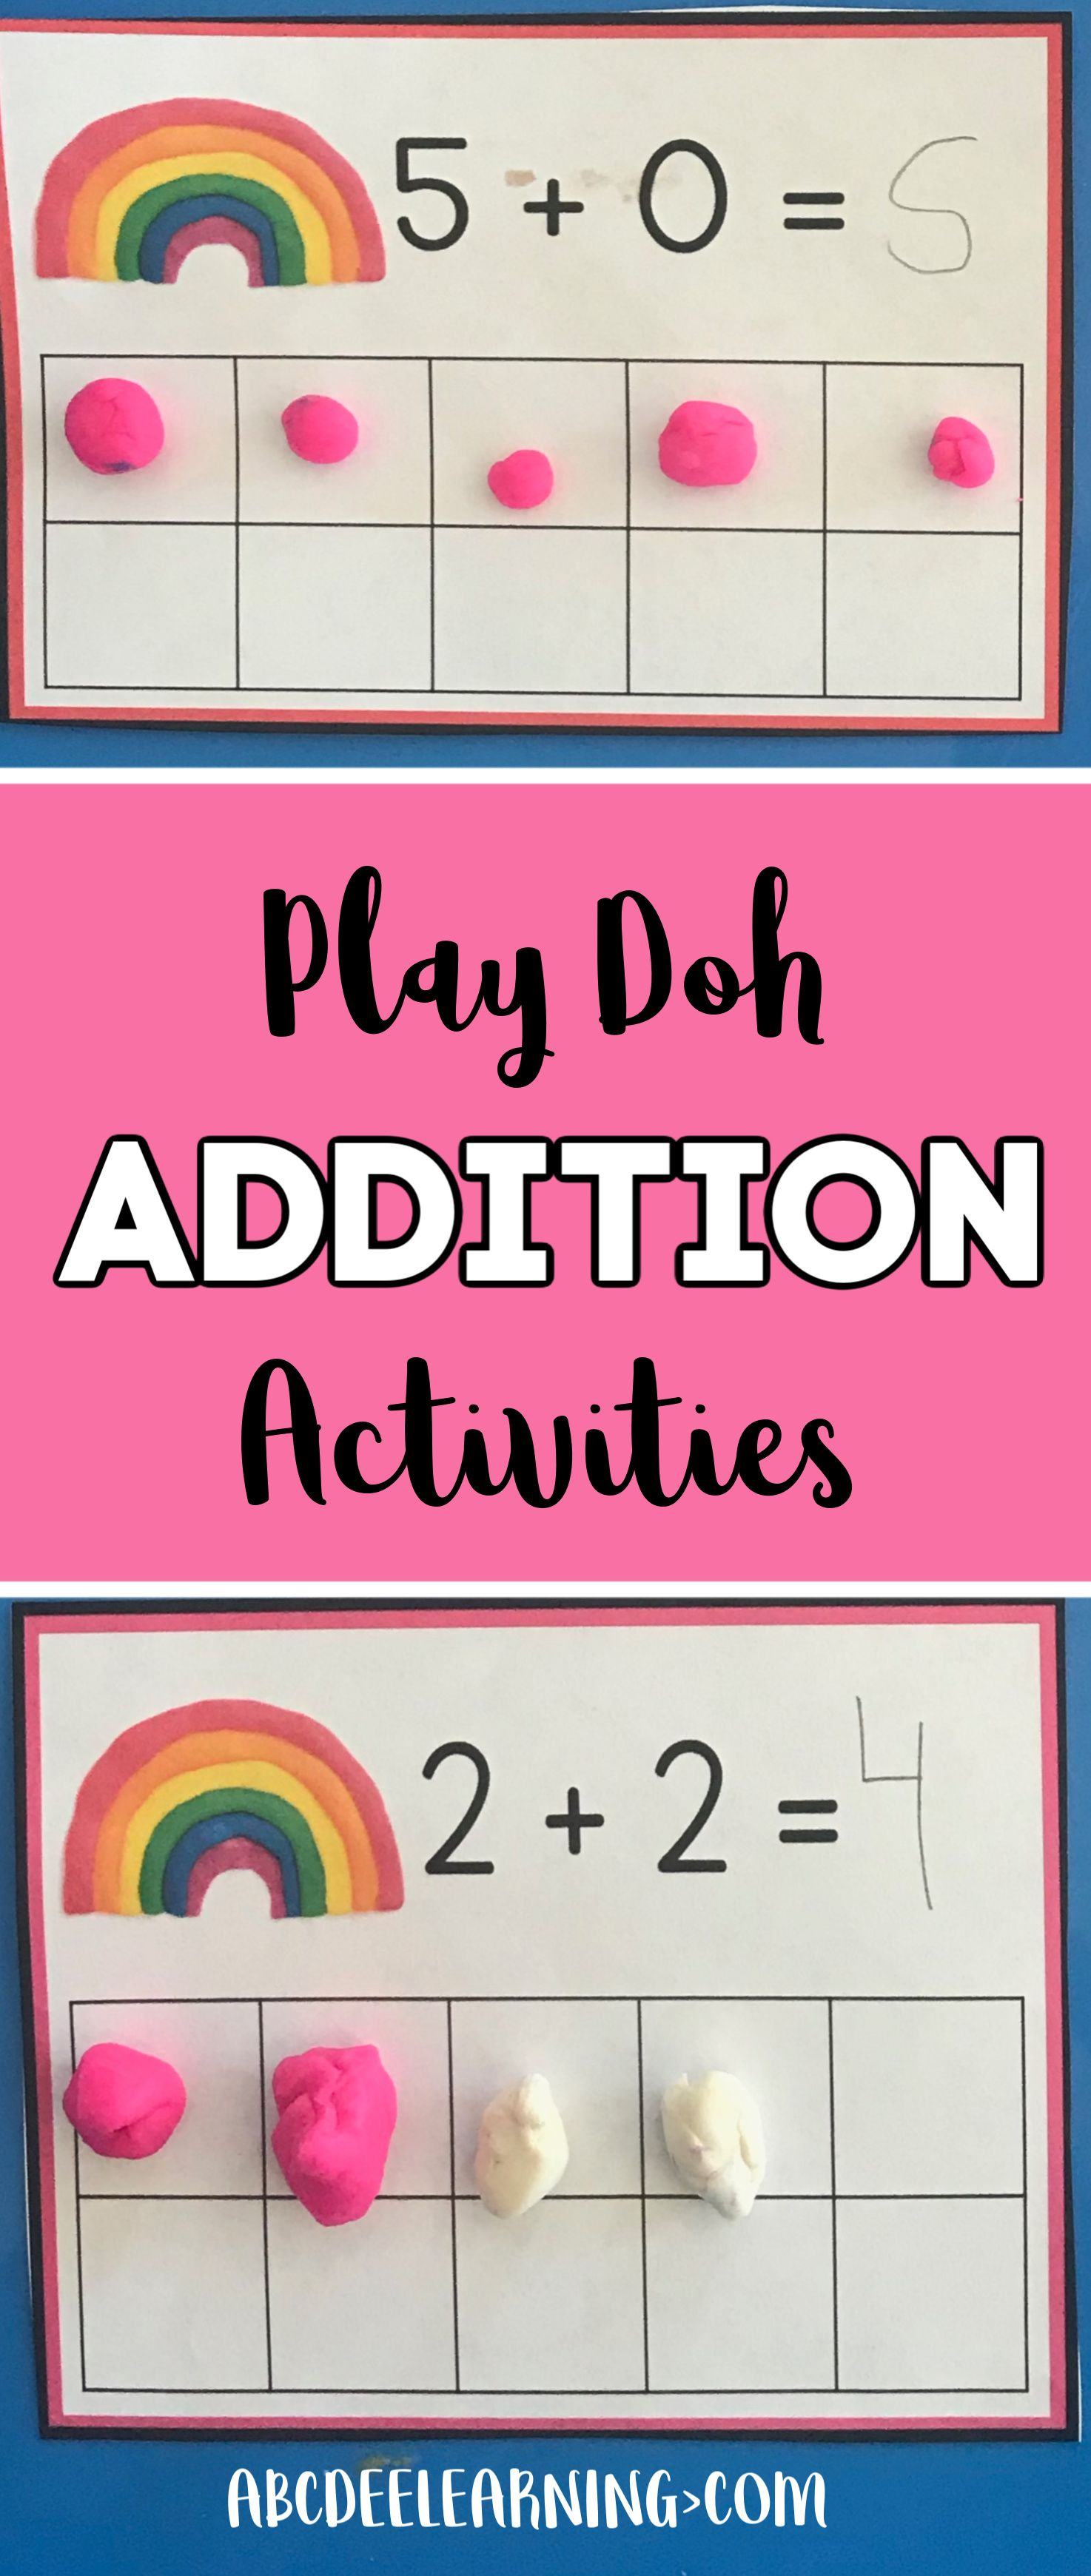 Play Doh Addition Addition Activities Kindergarten Activities Addition Kindergarten Simple addition activities for